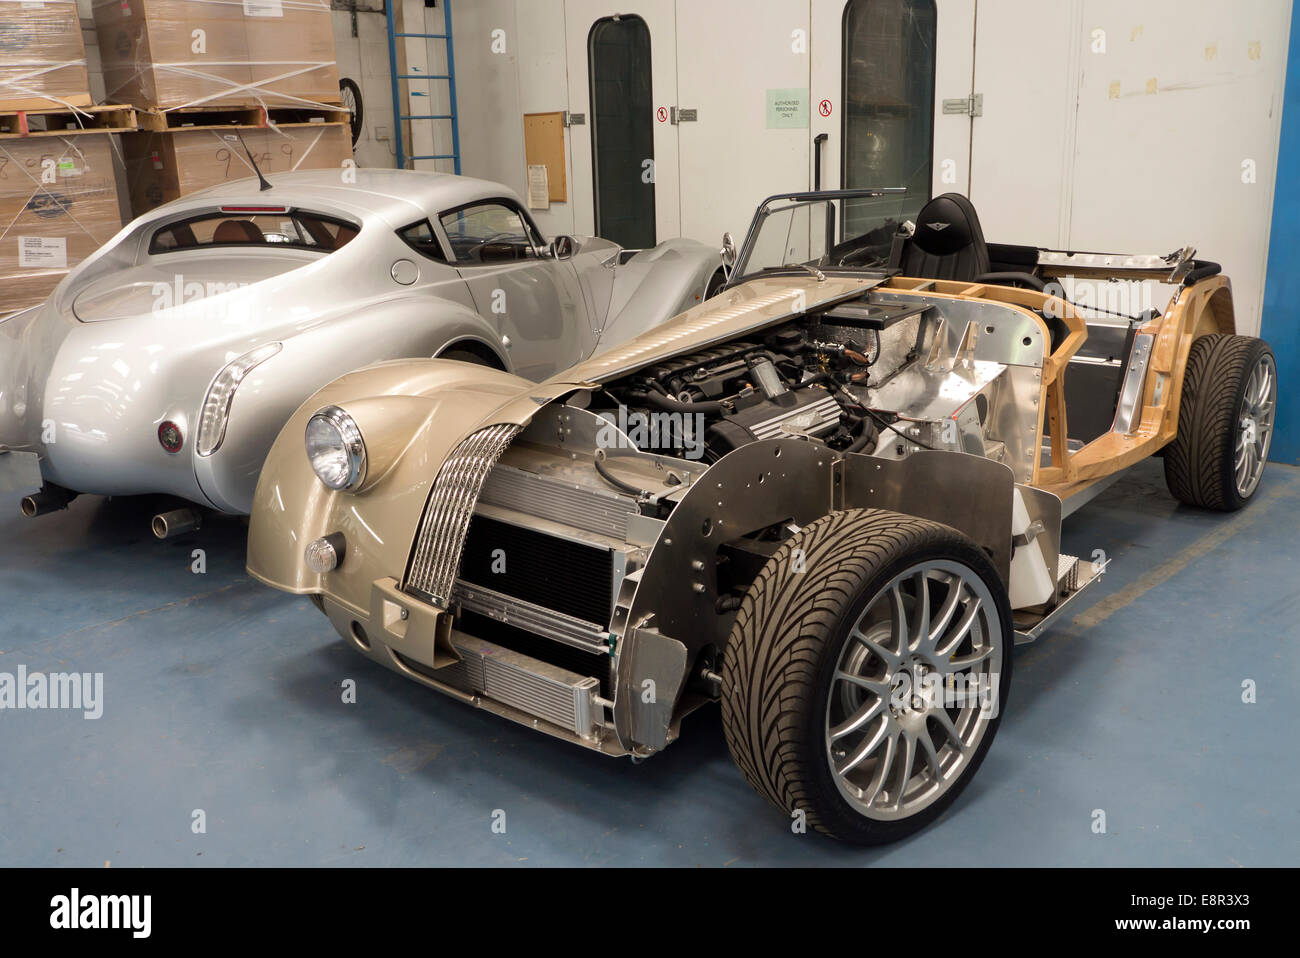 morgan-plus-8-geneva-motor-show-display-